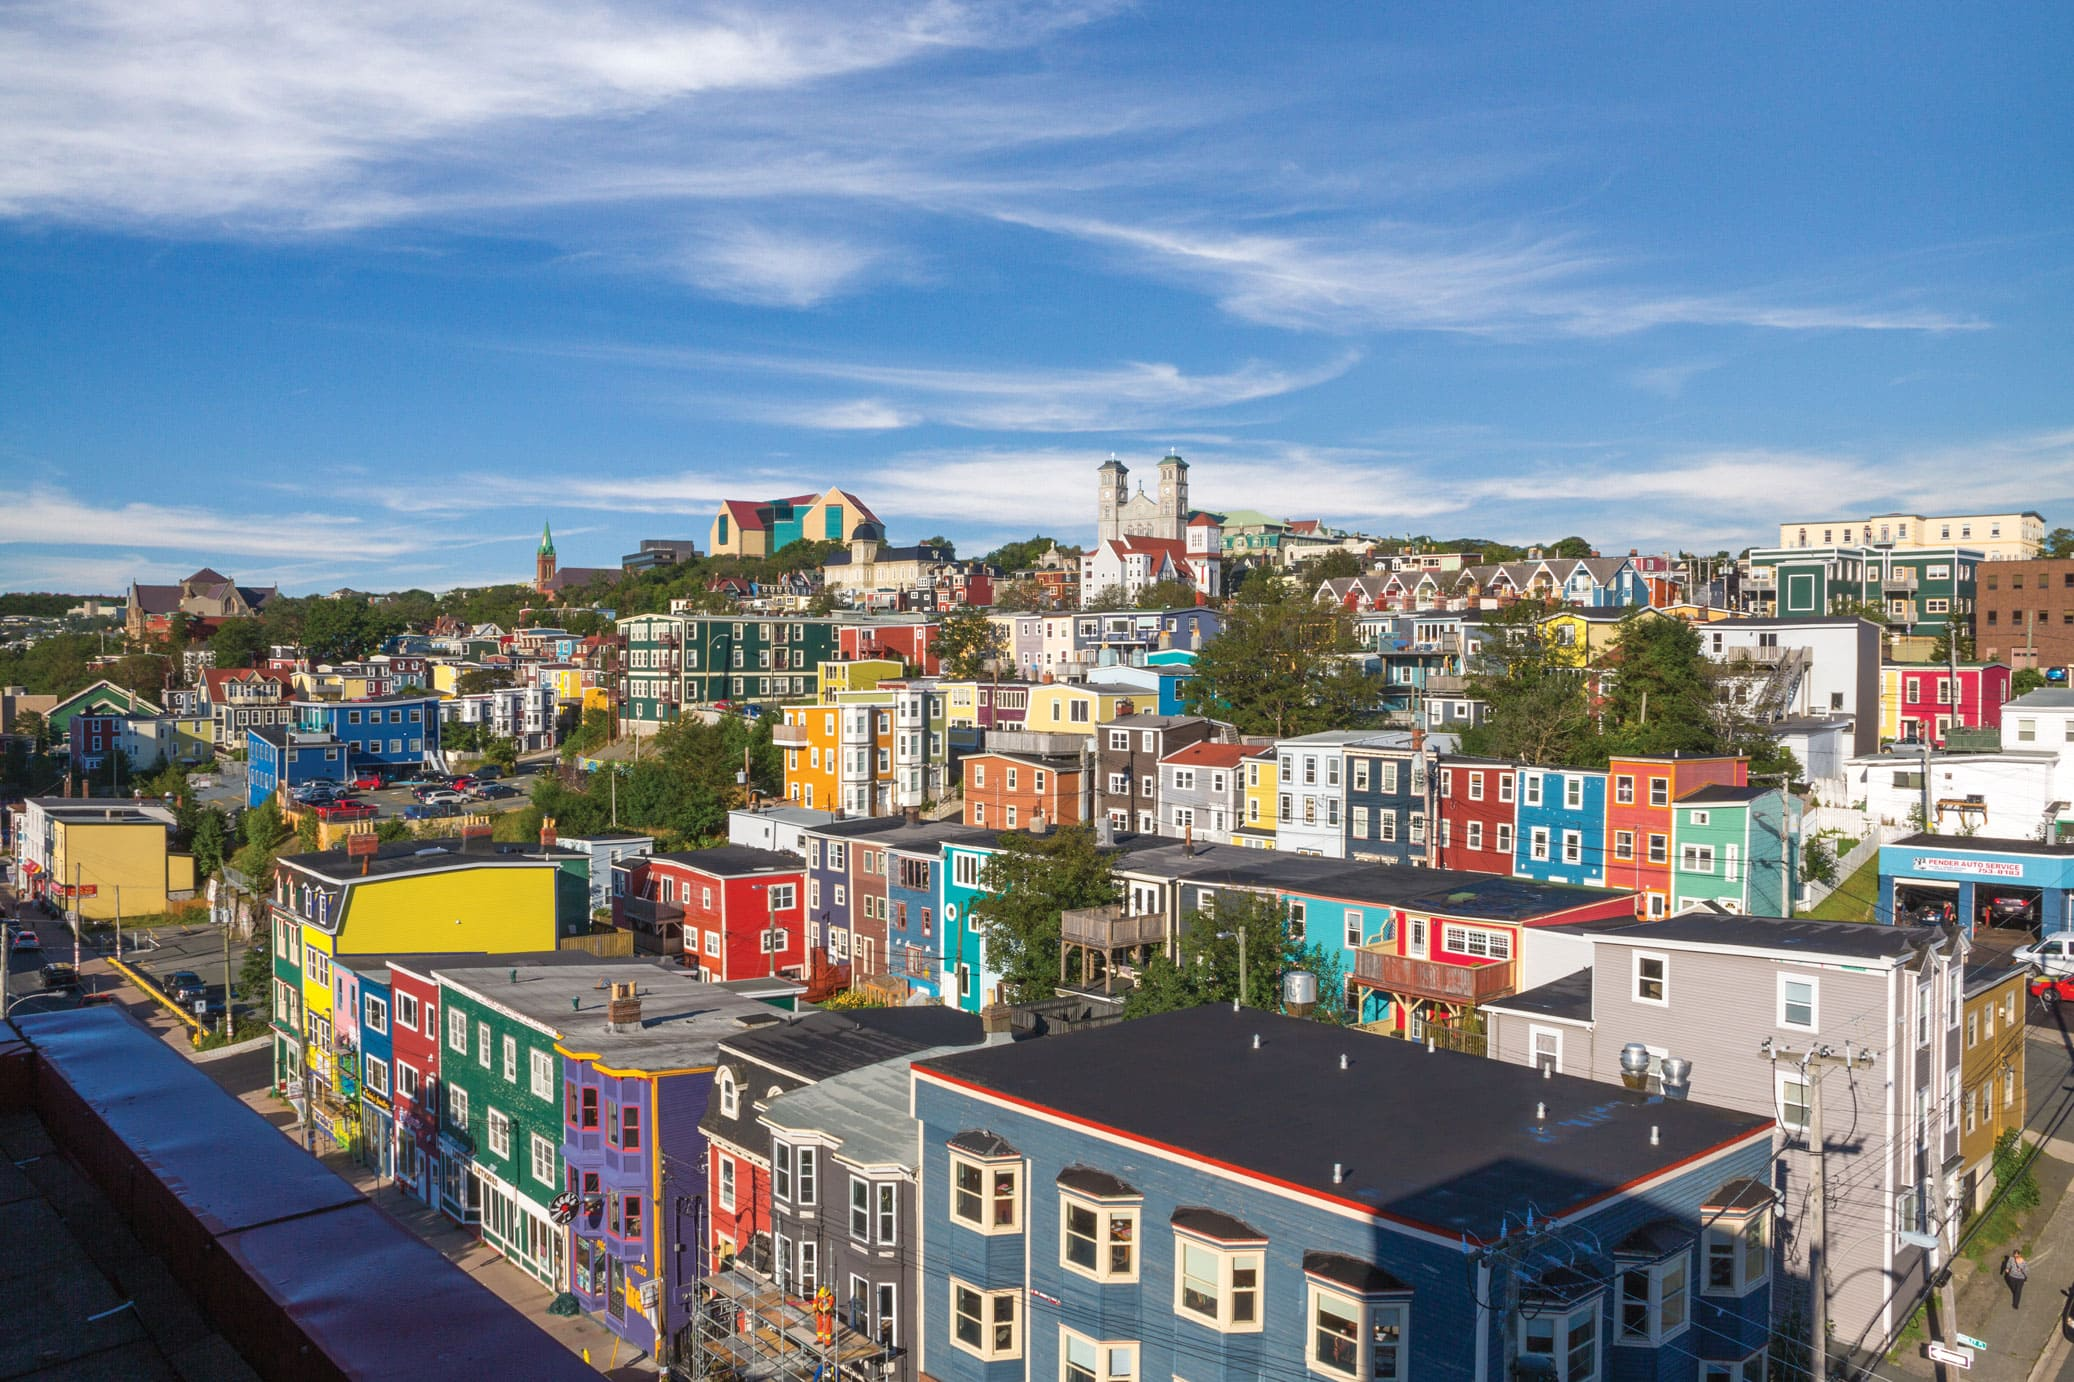 Iceland, Ireland, Norway, England, France And Denmark Are Travel Destinations That Are Likely On Your Radar. But What If I Told You That You Could Experience All Of These Cultures And Environments In One Place? Welcome To St. John's, The Capital Of City Of Newfoundland And Labrador. One Of The Most Eastern Places In North America, St. John's Offers History, Nature, Wildlife And Culture. Here's Why You Should Go.